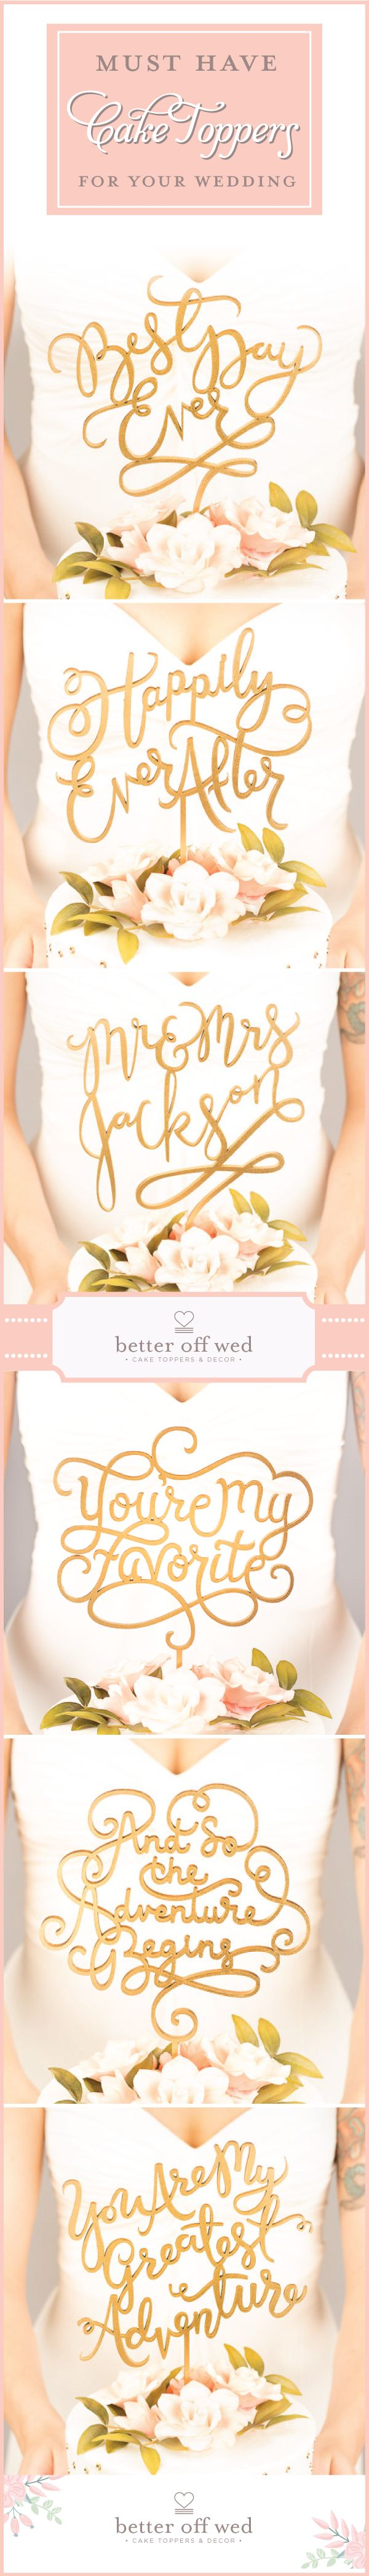 If you thought you didn't want a cake topper these will change your mind! www.betteroffwed.co